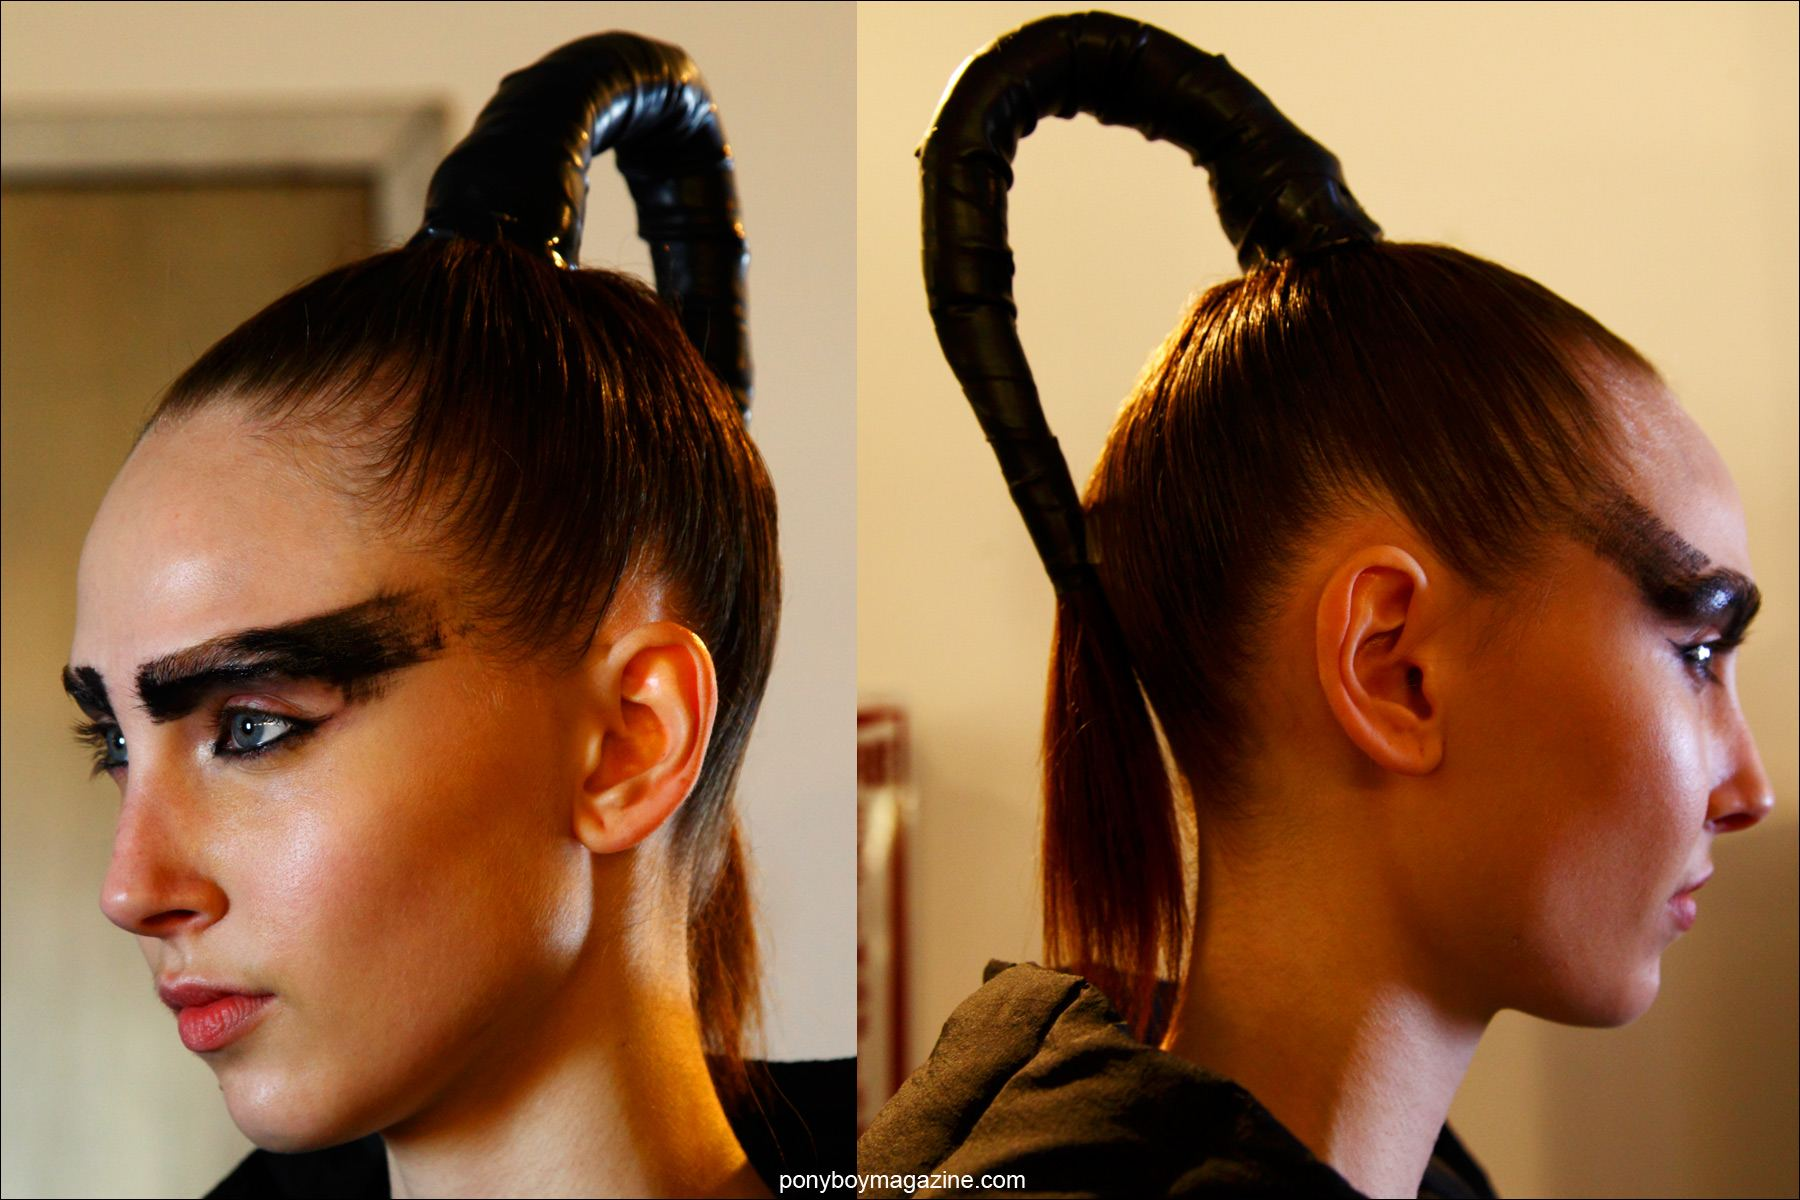 An extremely modern ponytail, photographed backstage at Chromat F/W15 collection in New York. Photos by Alexander Thompson for Ponyboy magazine.